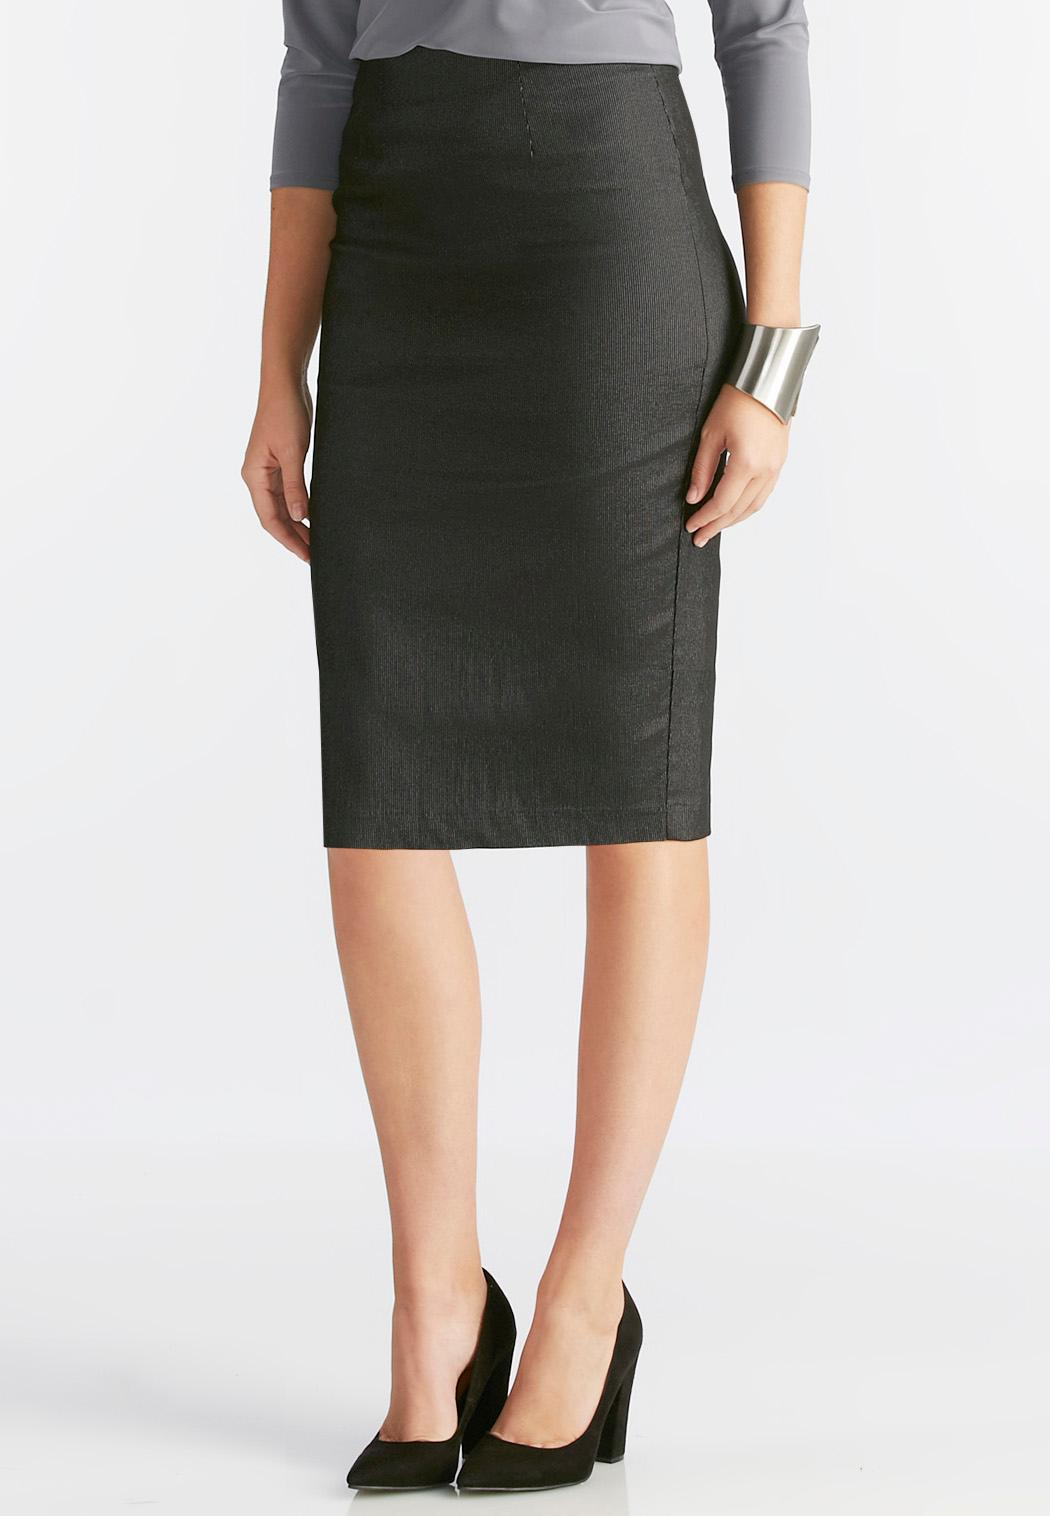 metallic pinstriped pencil skirt plus below the knee